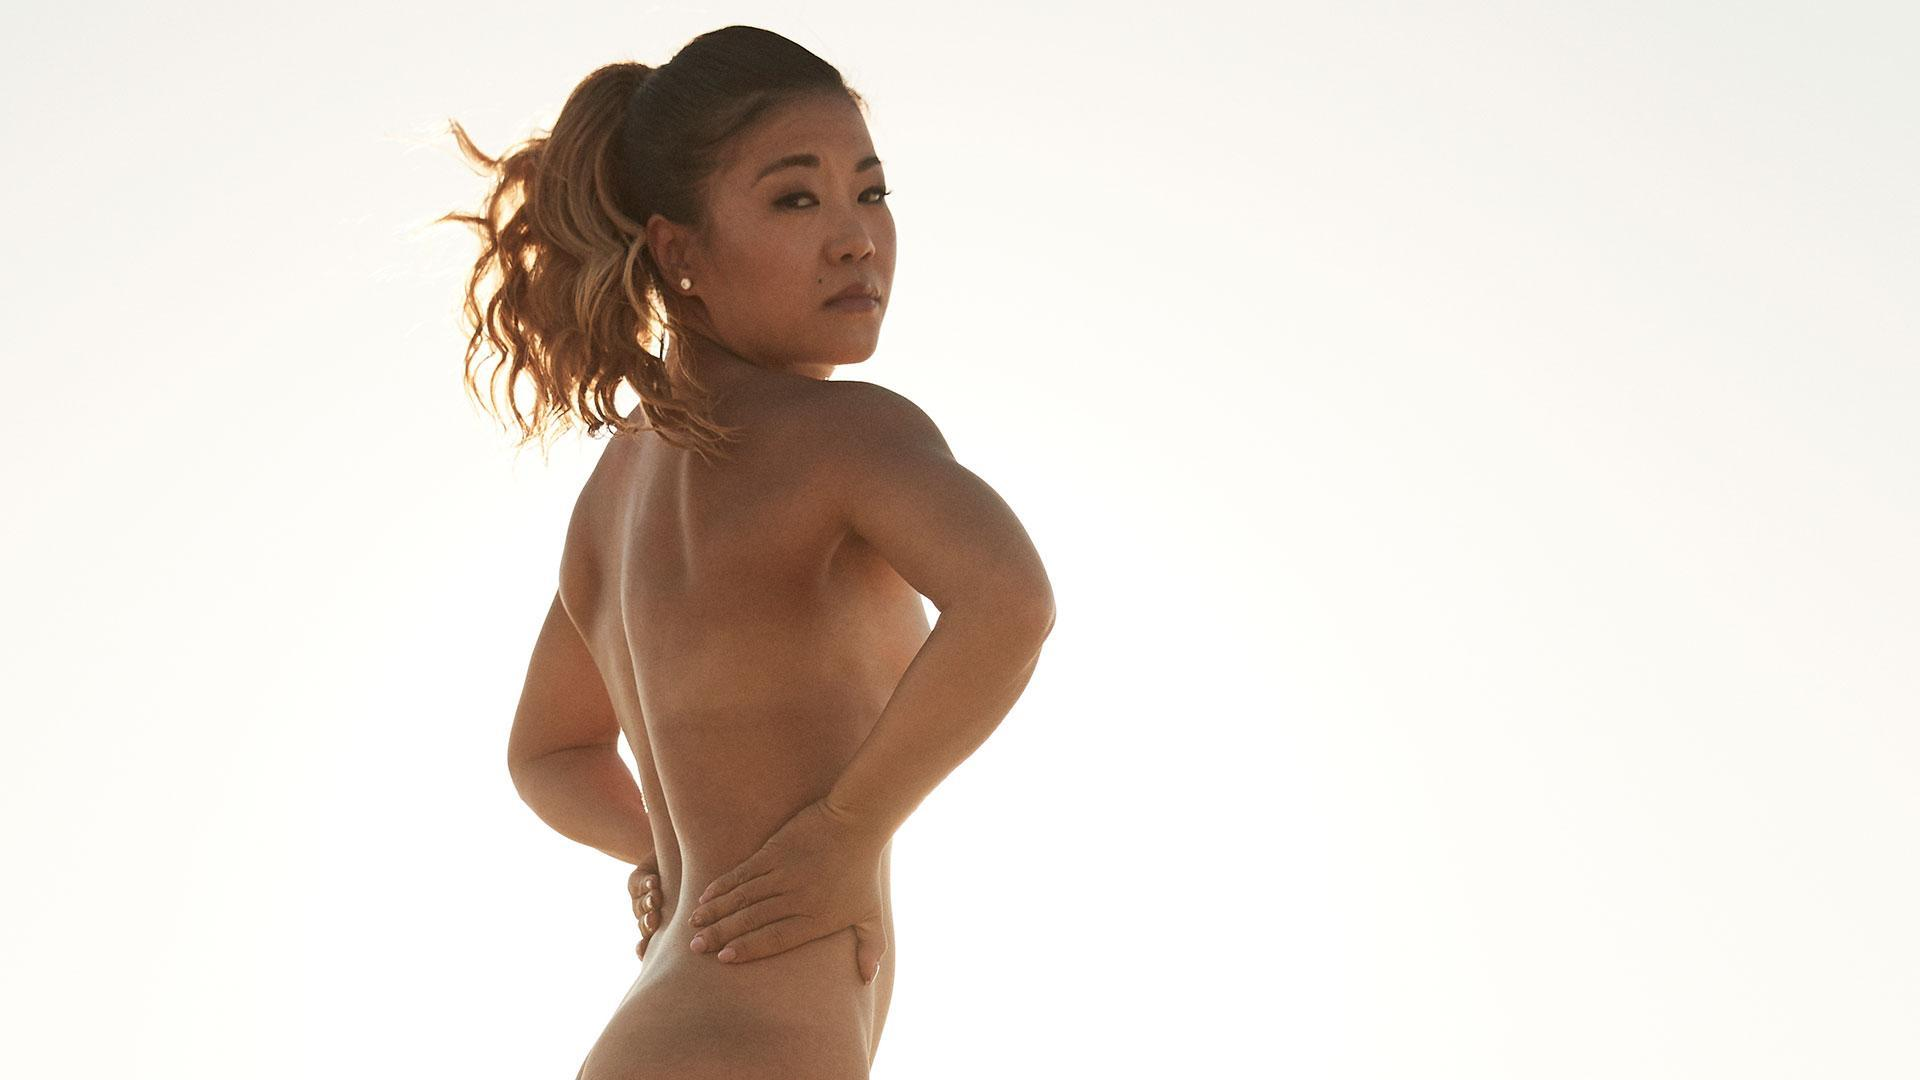 Behind the scenes of Scout Bassett's Body Issue shoot